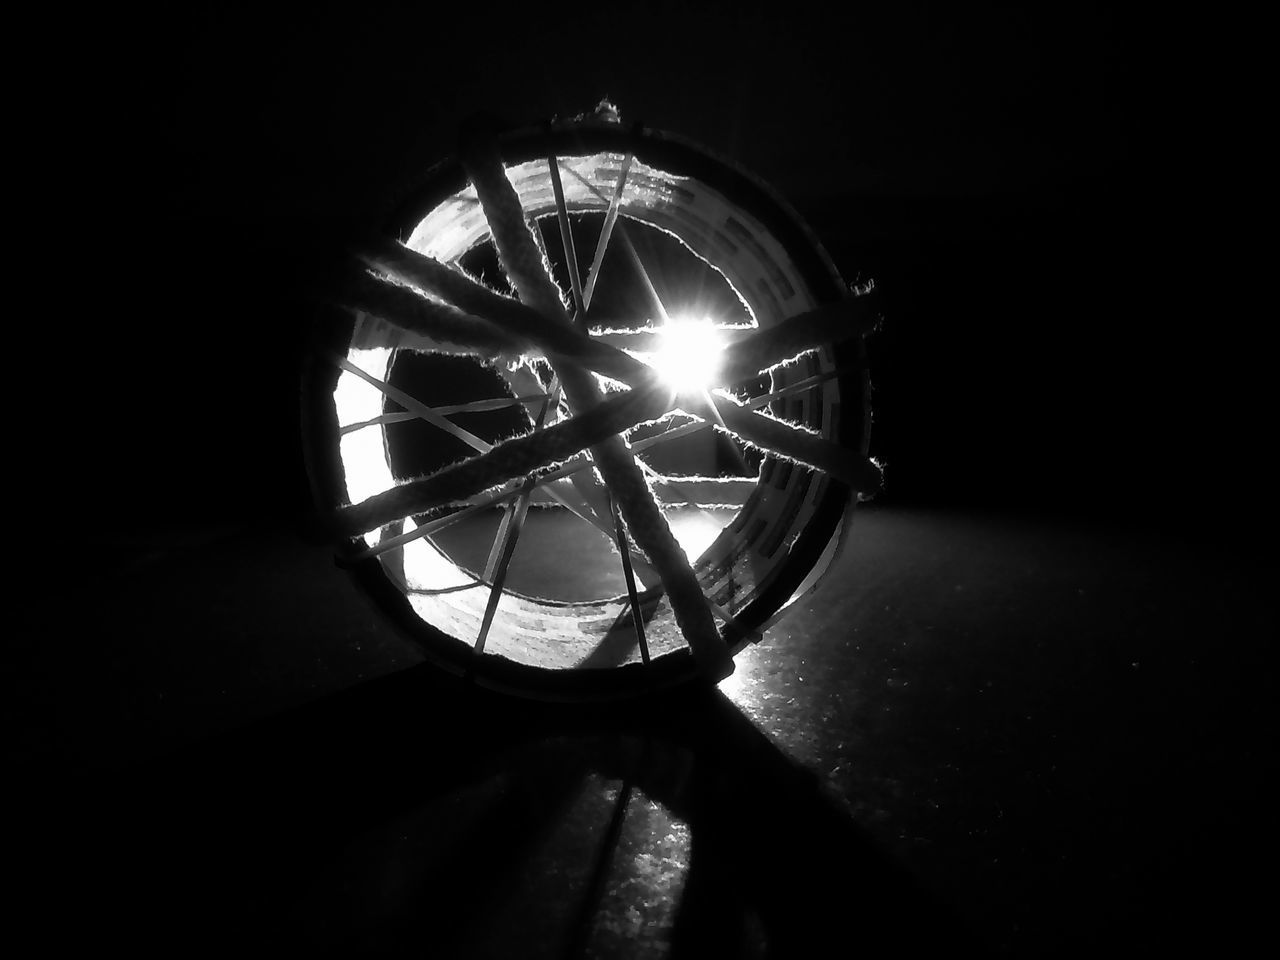 Circle No People Night Indoors  Tire Close-up Black Background Mobilephotography Silhouette EyeEmNewHere Camera Light Source Black Background Focus On Foreground Dark Cutlight